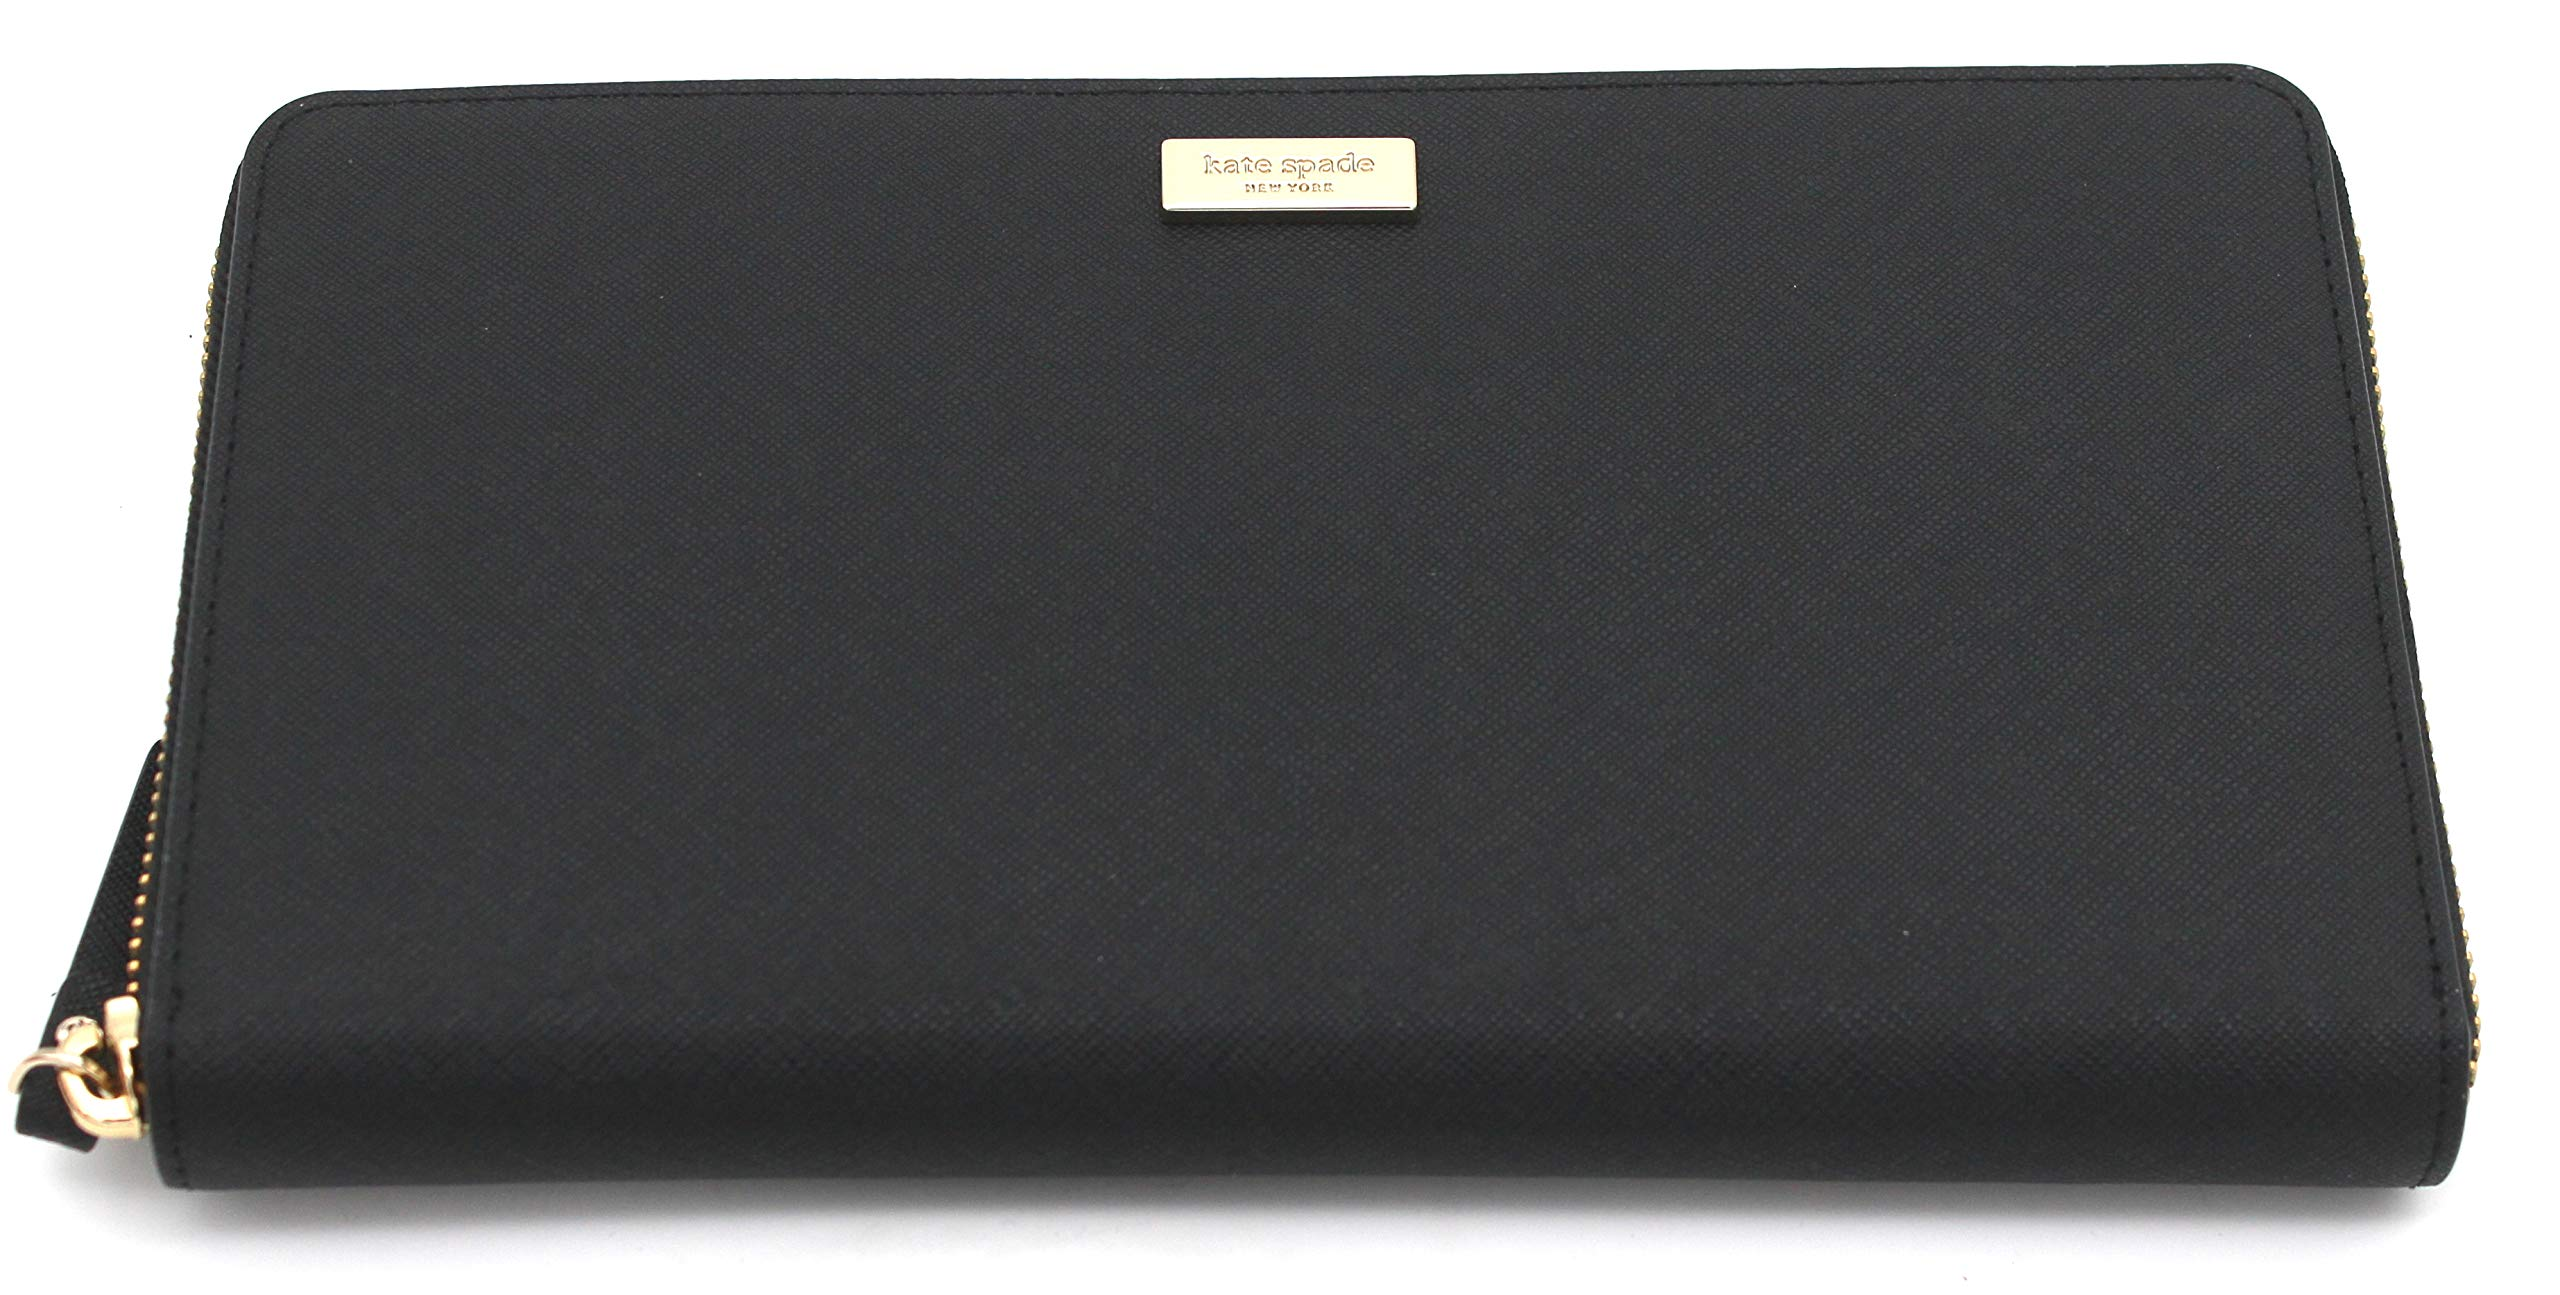 Kate Spade Laurel Way Kaden Large Travel Wallet (Black)